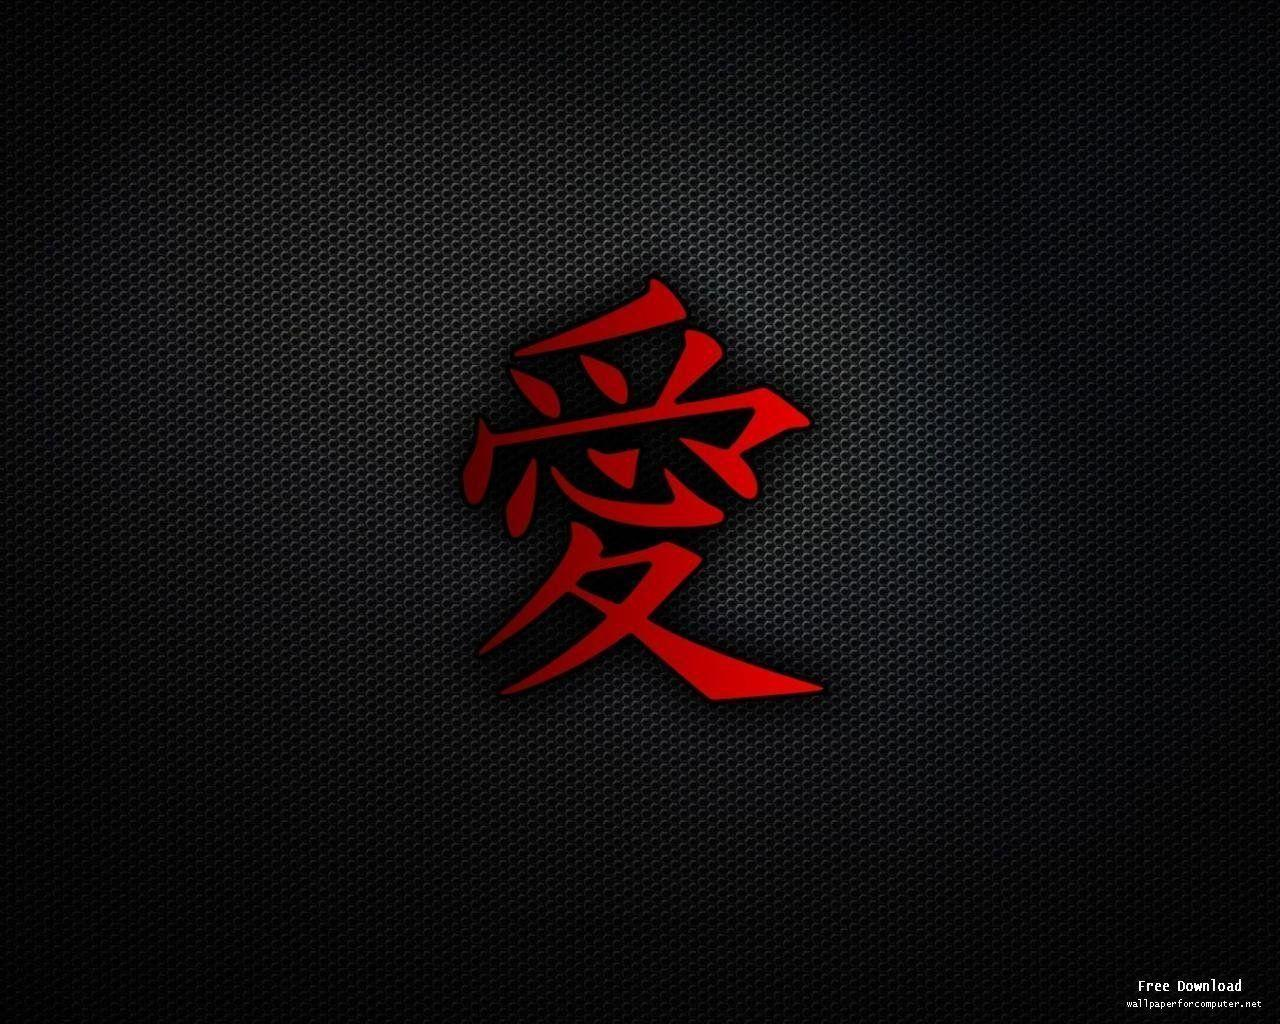 1280x1024 Chinese Character Wallpapers